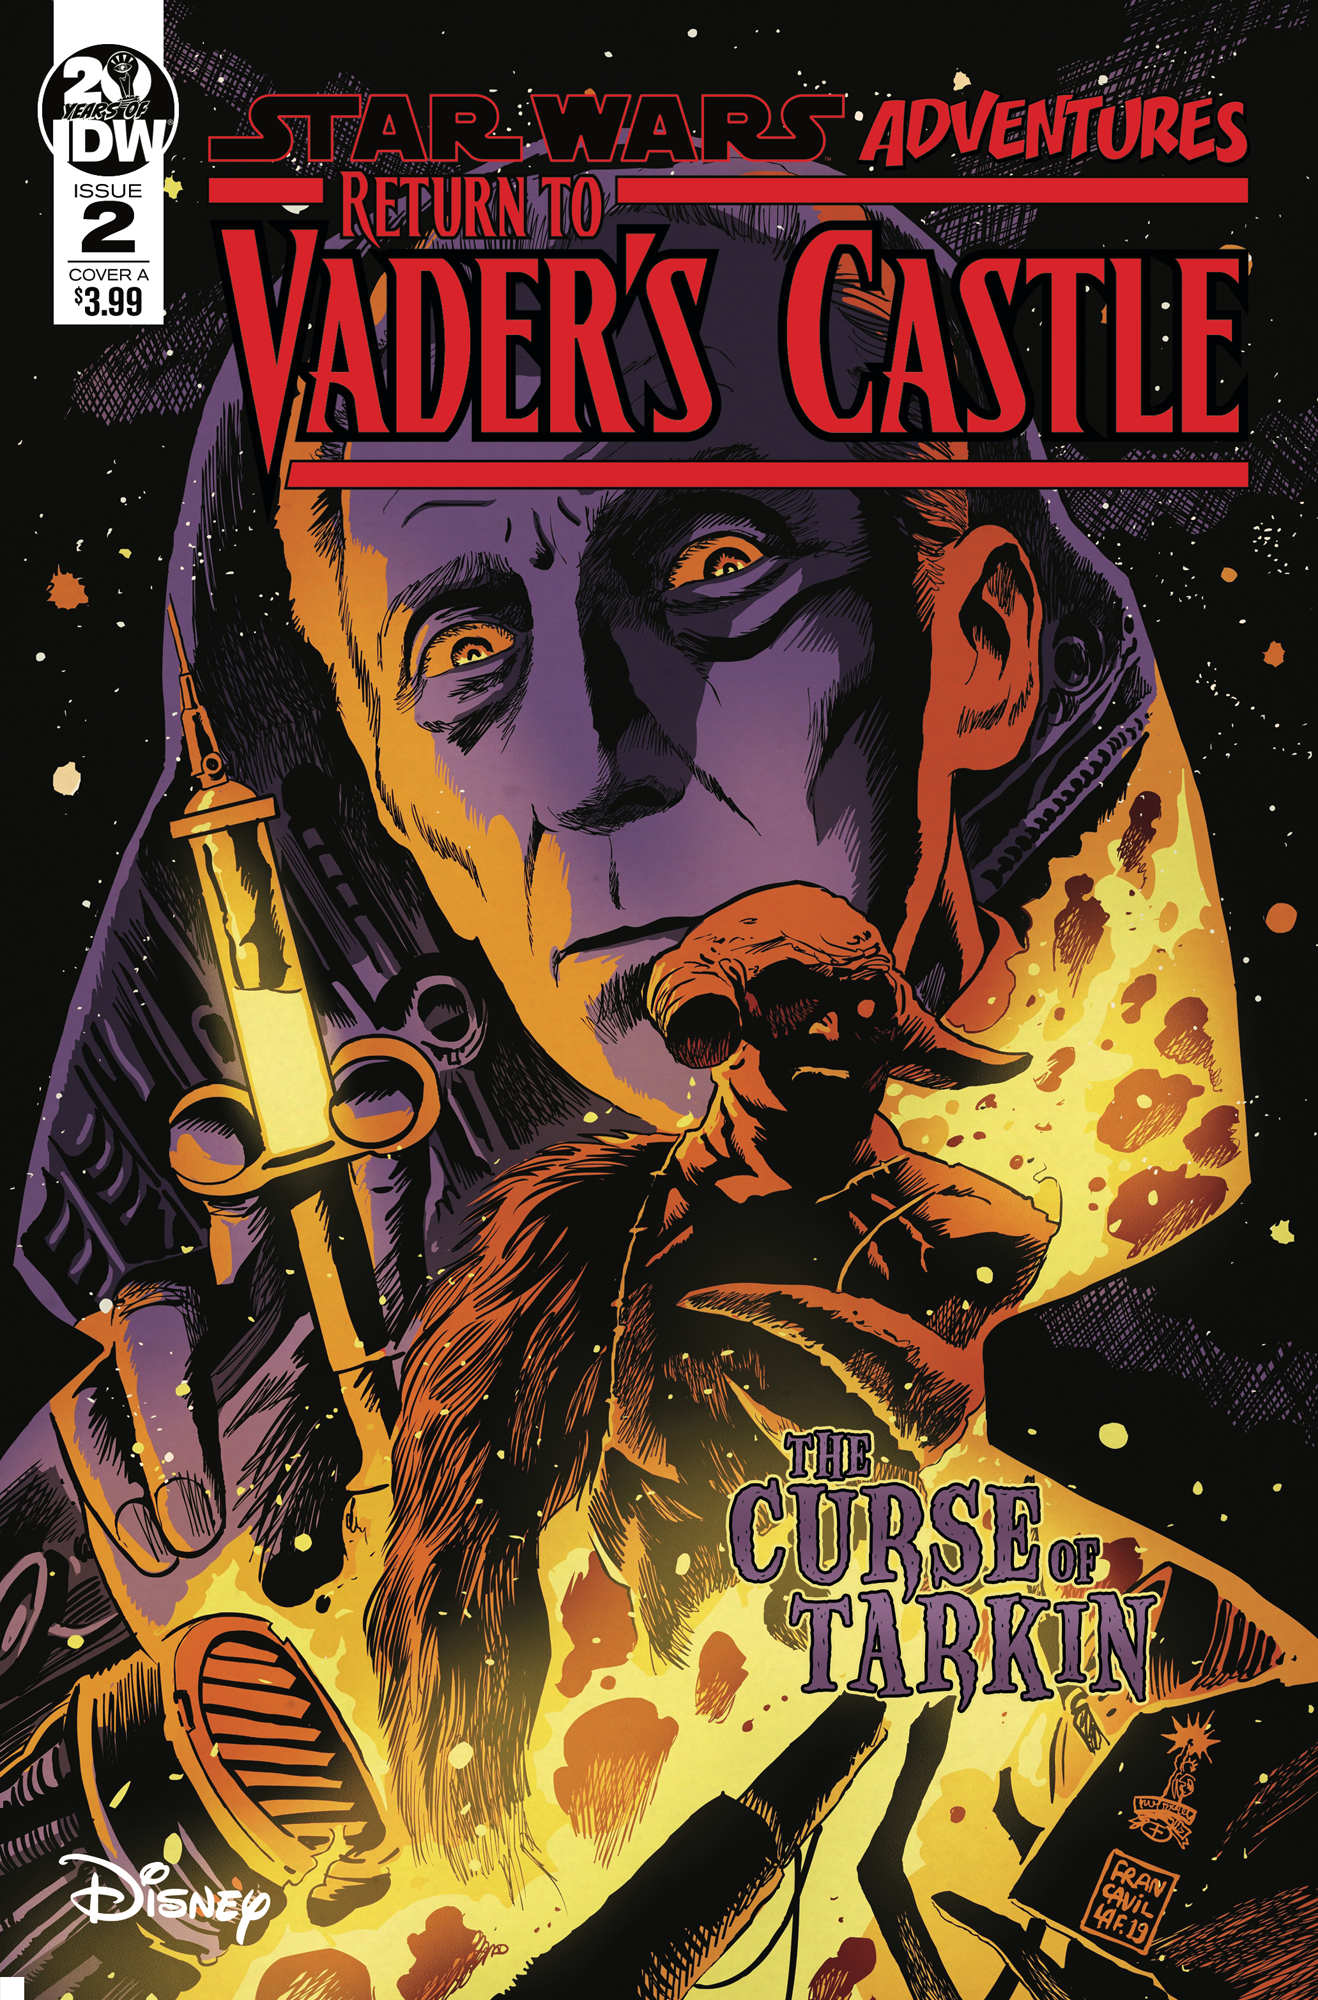 STAR WARS ADVENTURES RETURN TO VADERS CASTLE #2 CVR A FRANCA